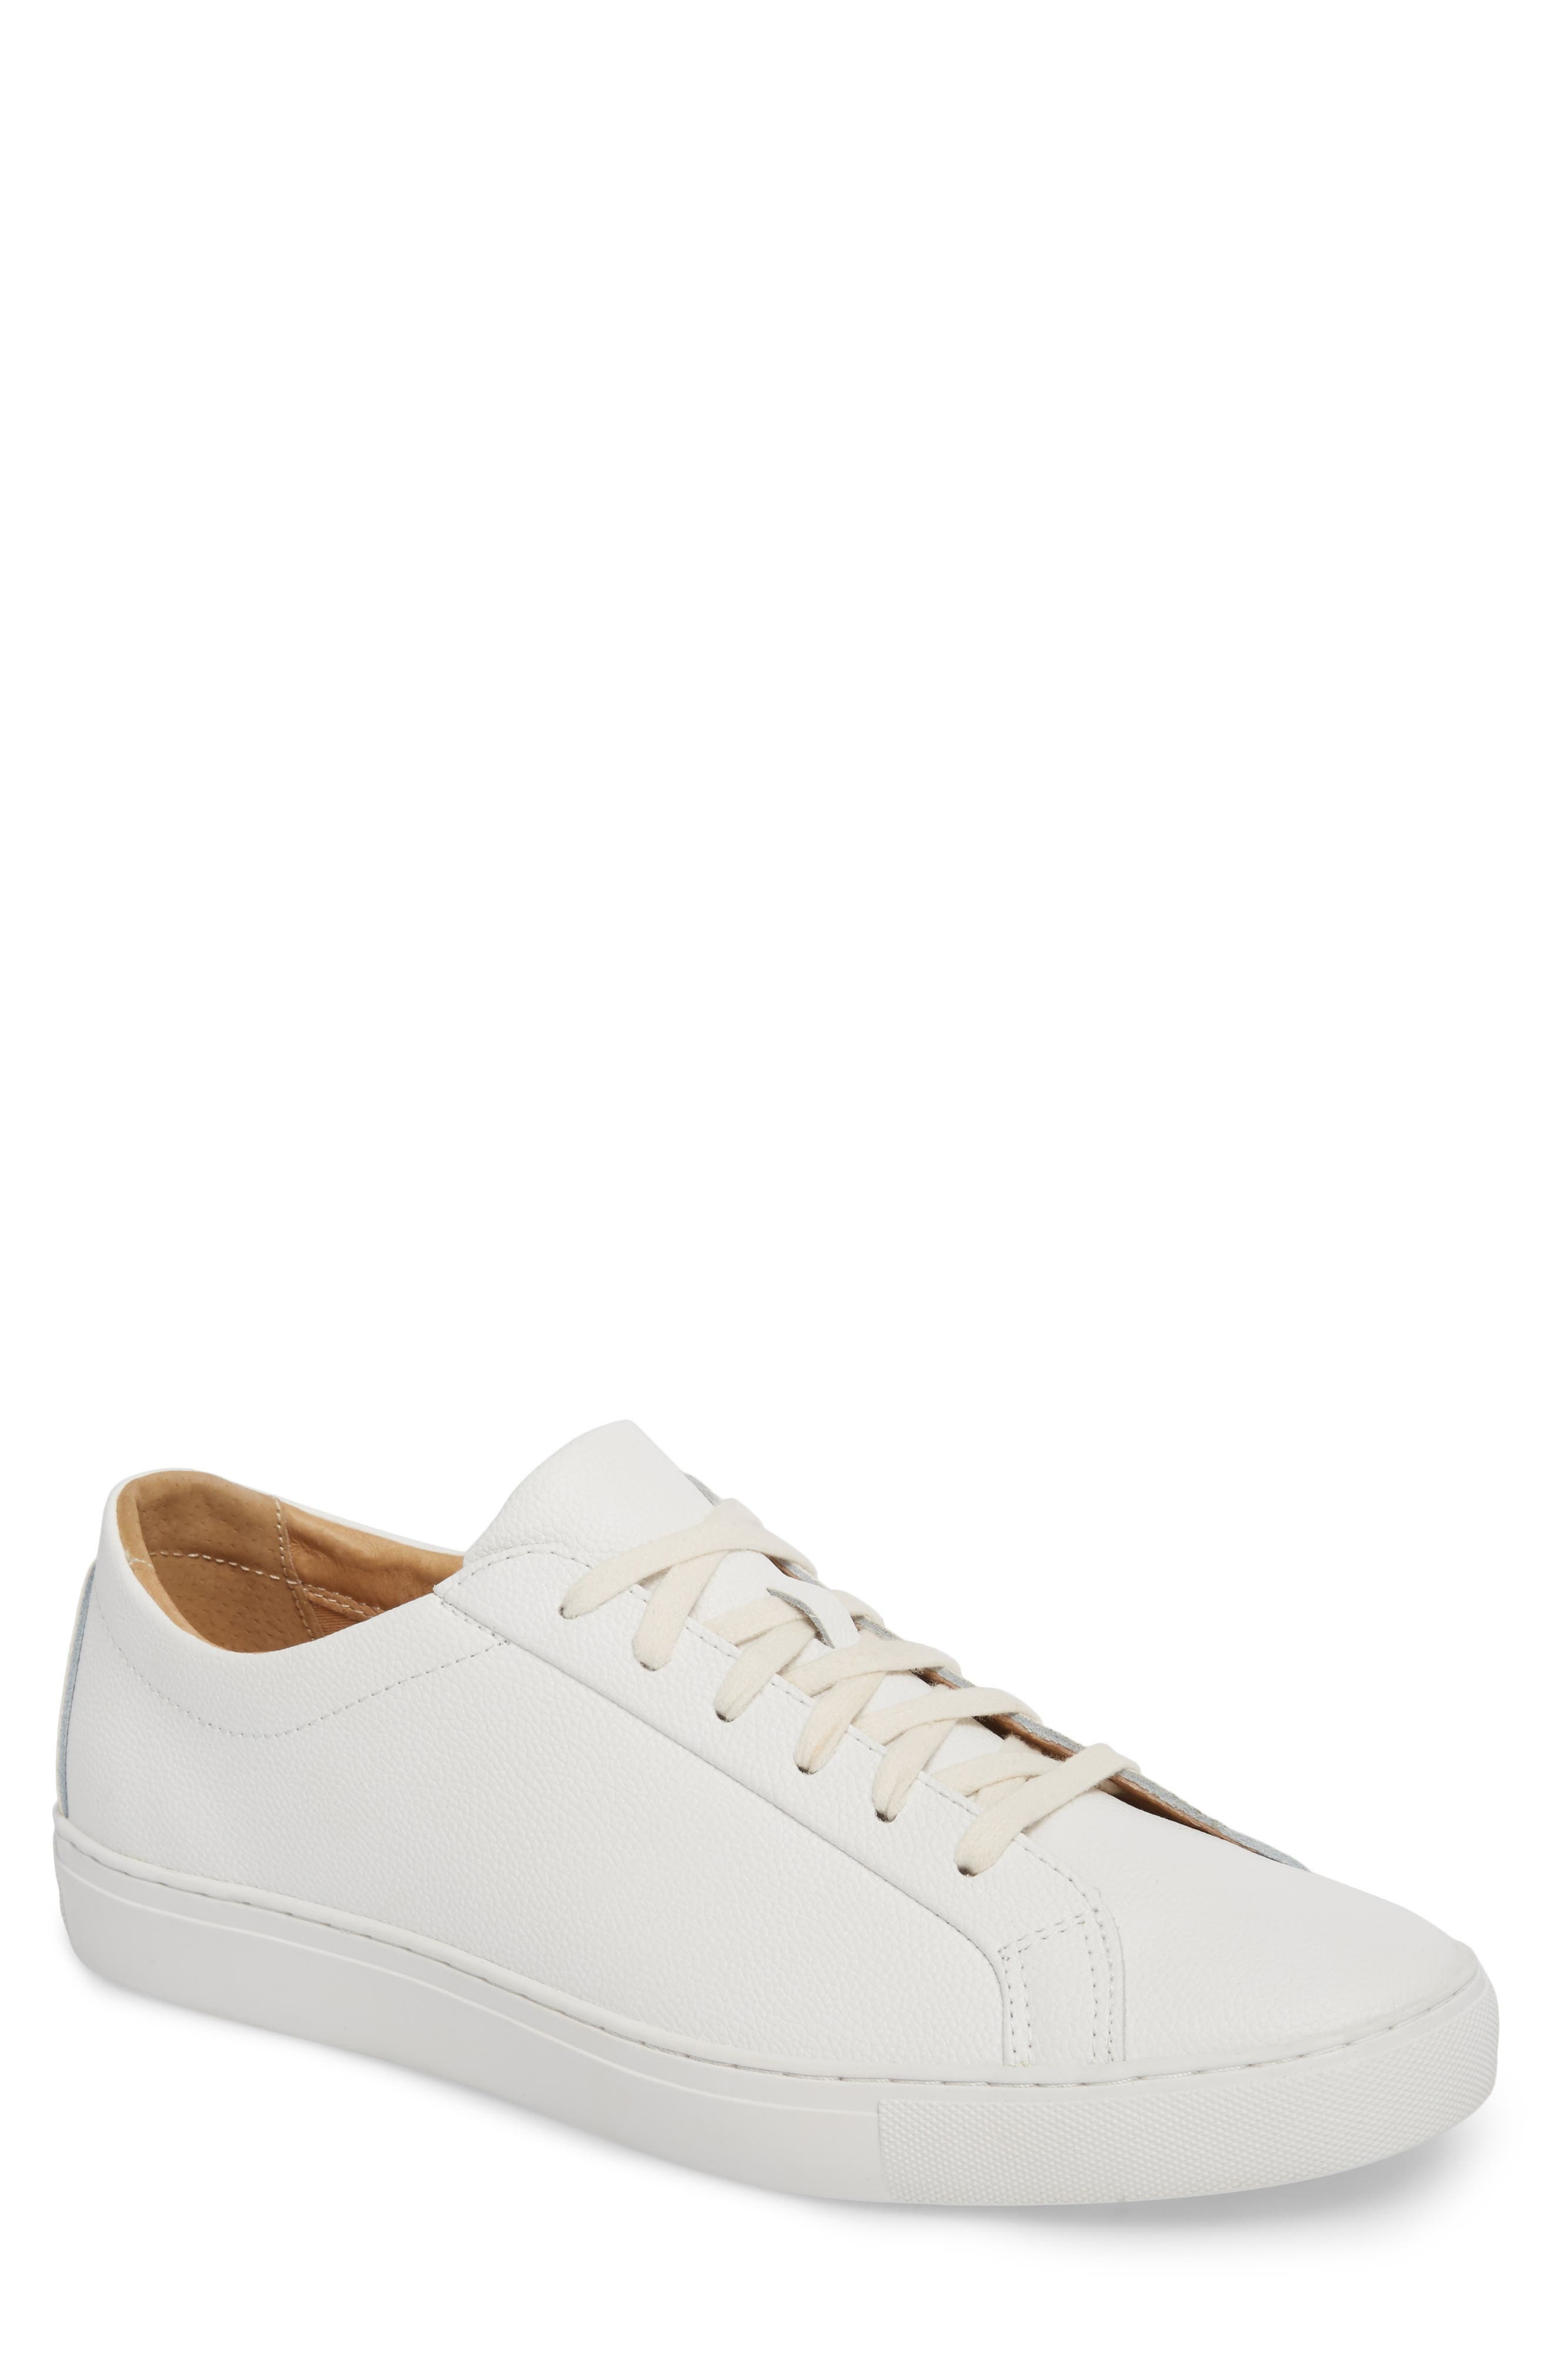 Kennedy Low Top Sneaker,                             Main thumbnail 1, color,                             WHITE LEATHER